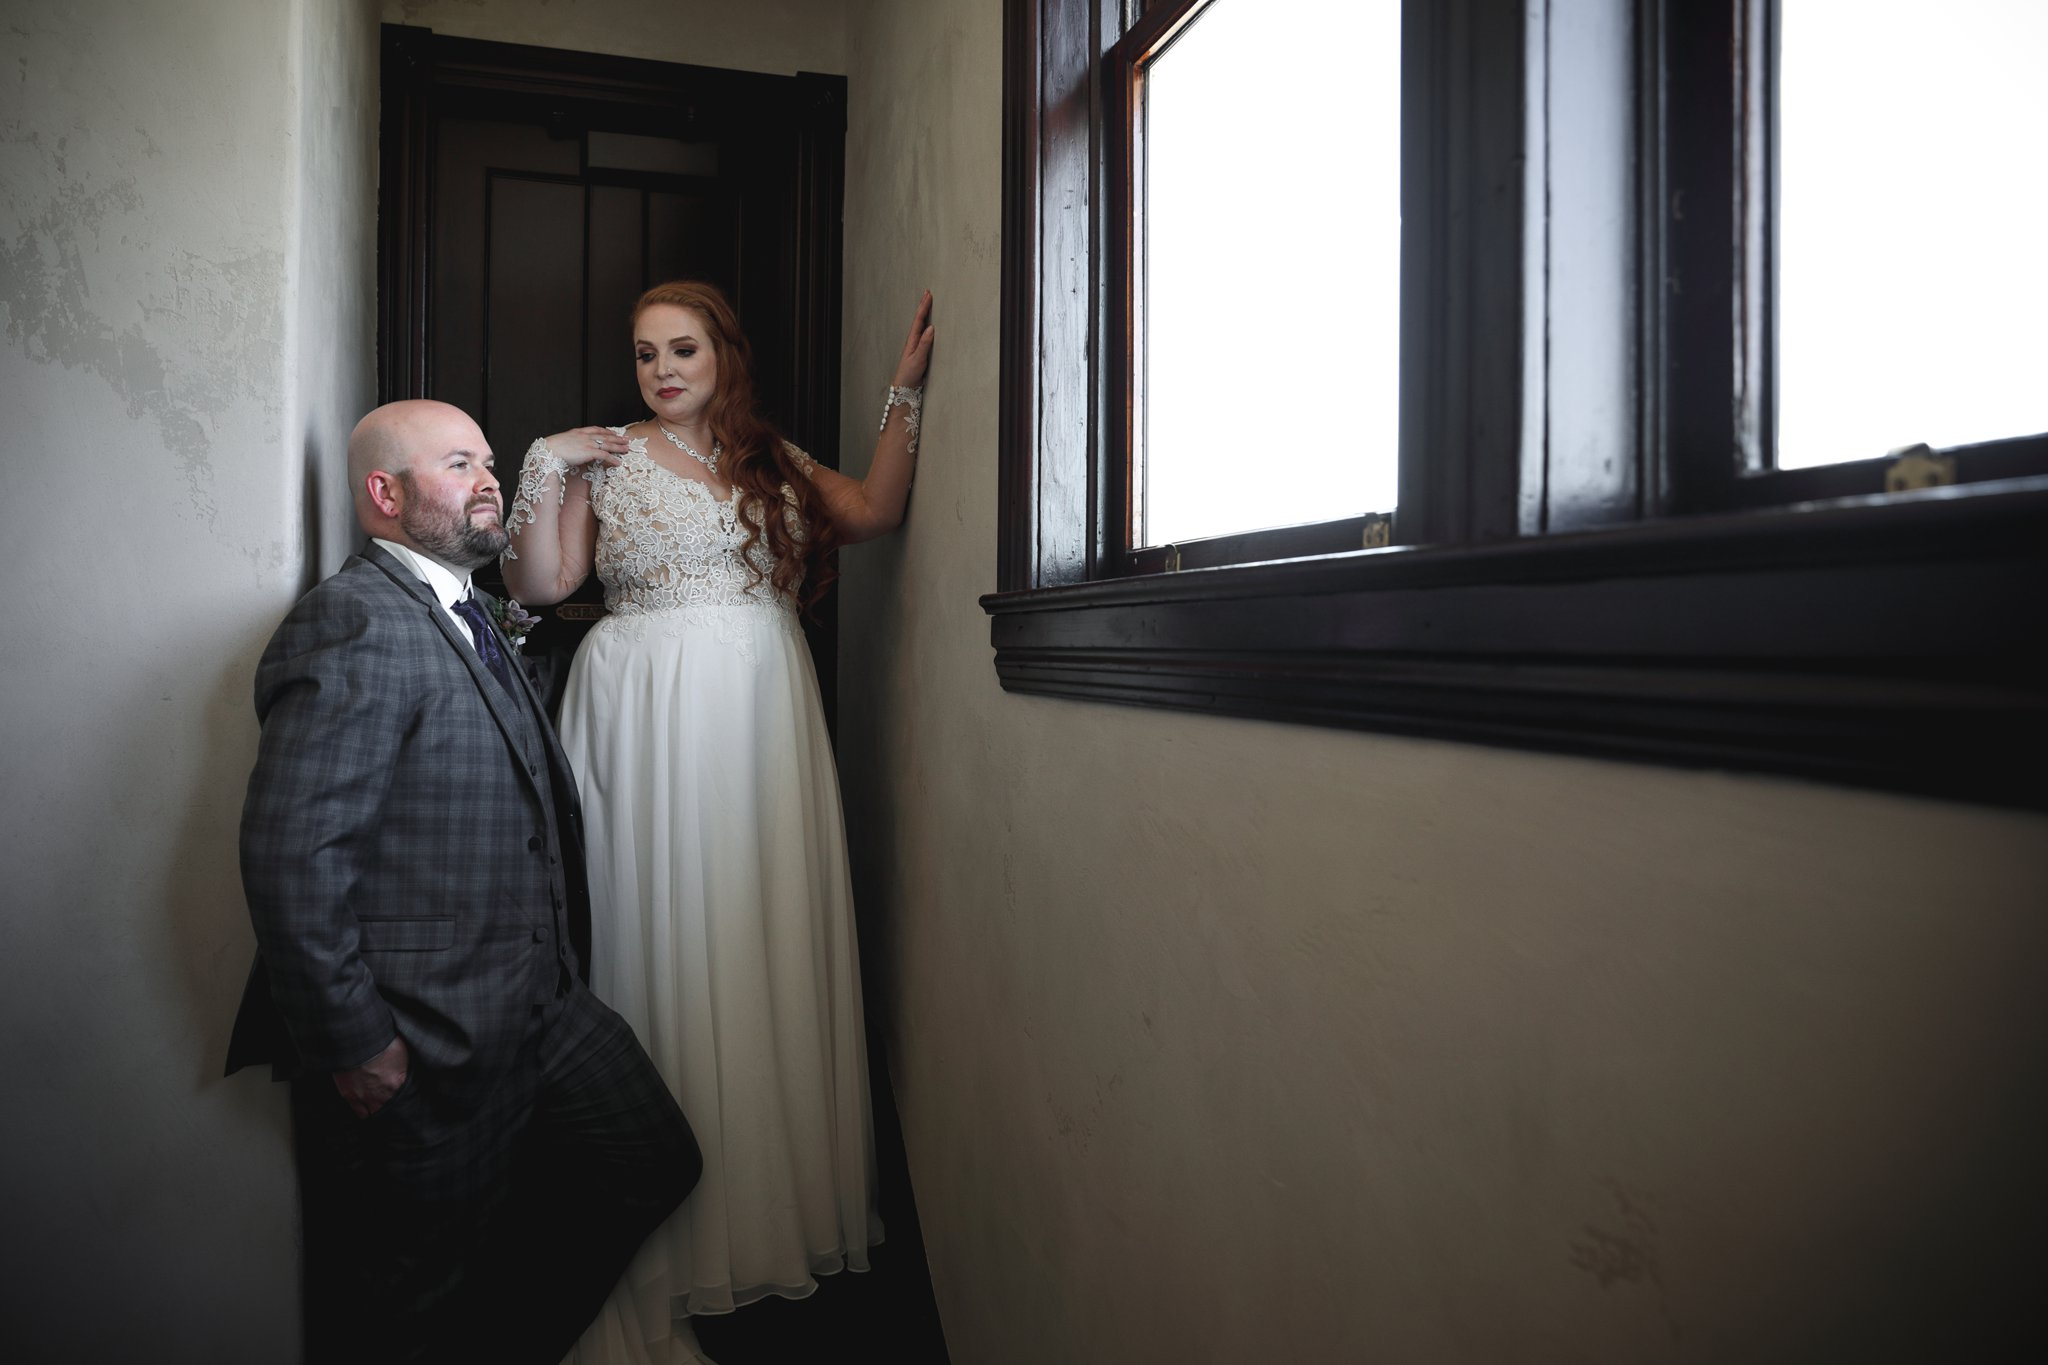 AshleyDaphnePhotography Calgary Wedding Photographer Rouge Inglewood Bride Groom Photography_0081.jpg